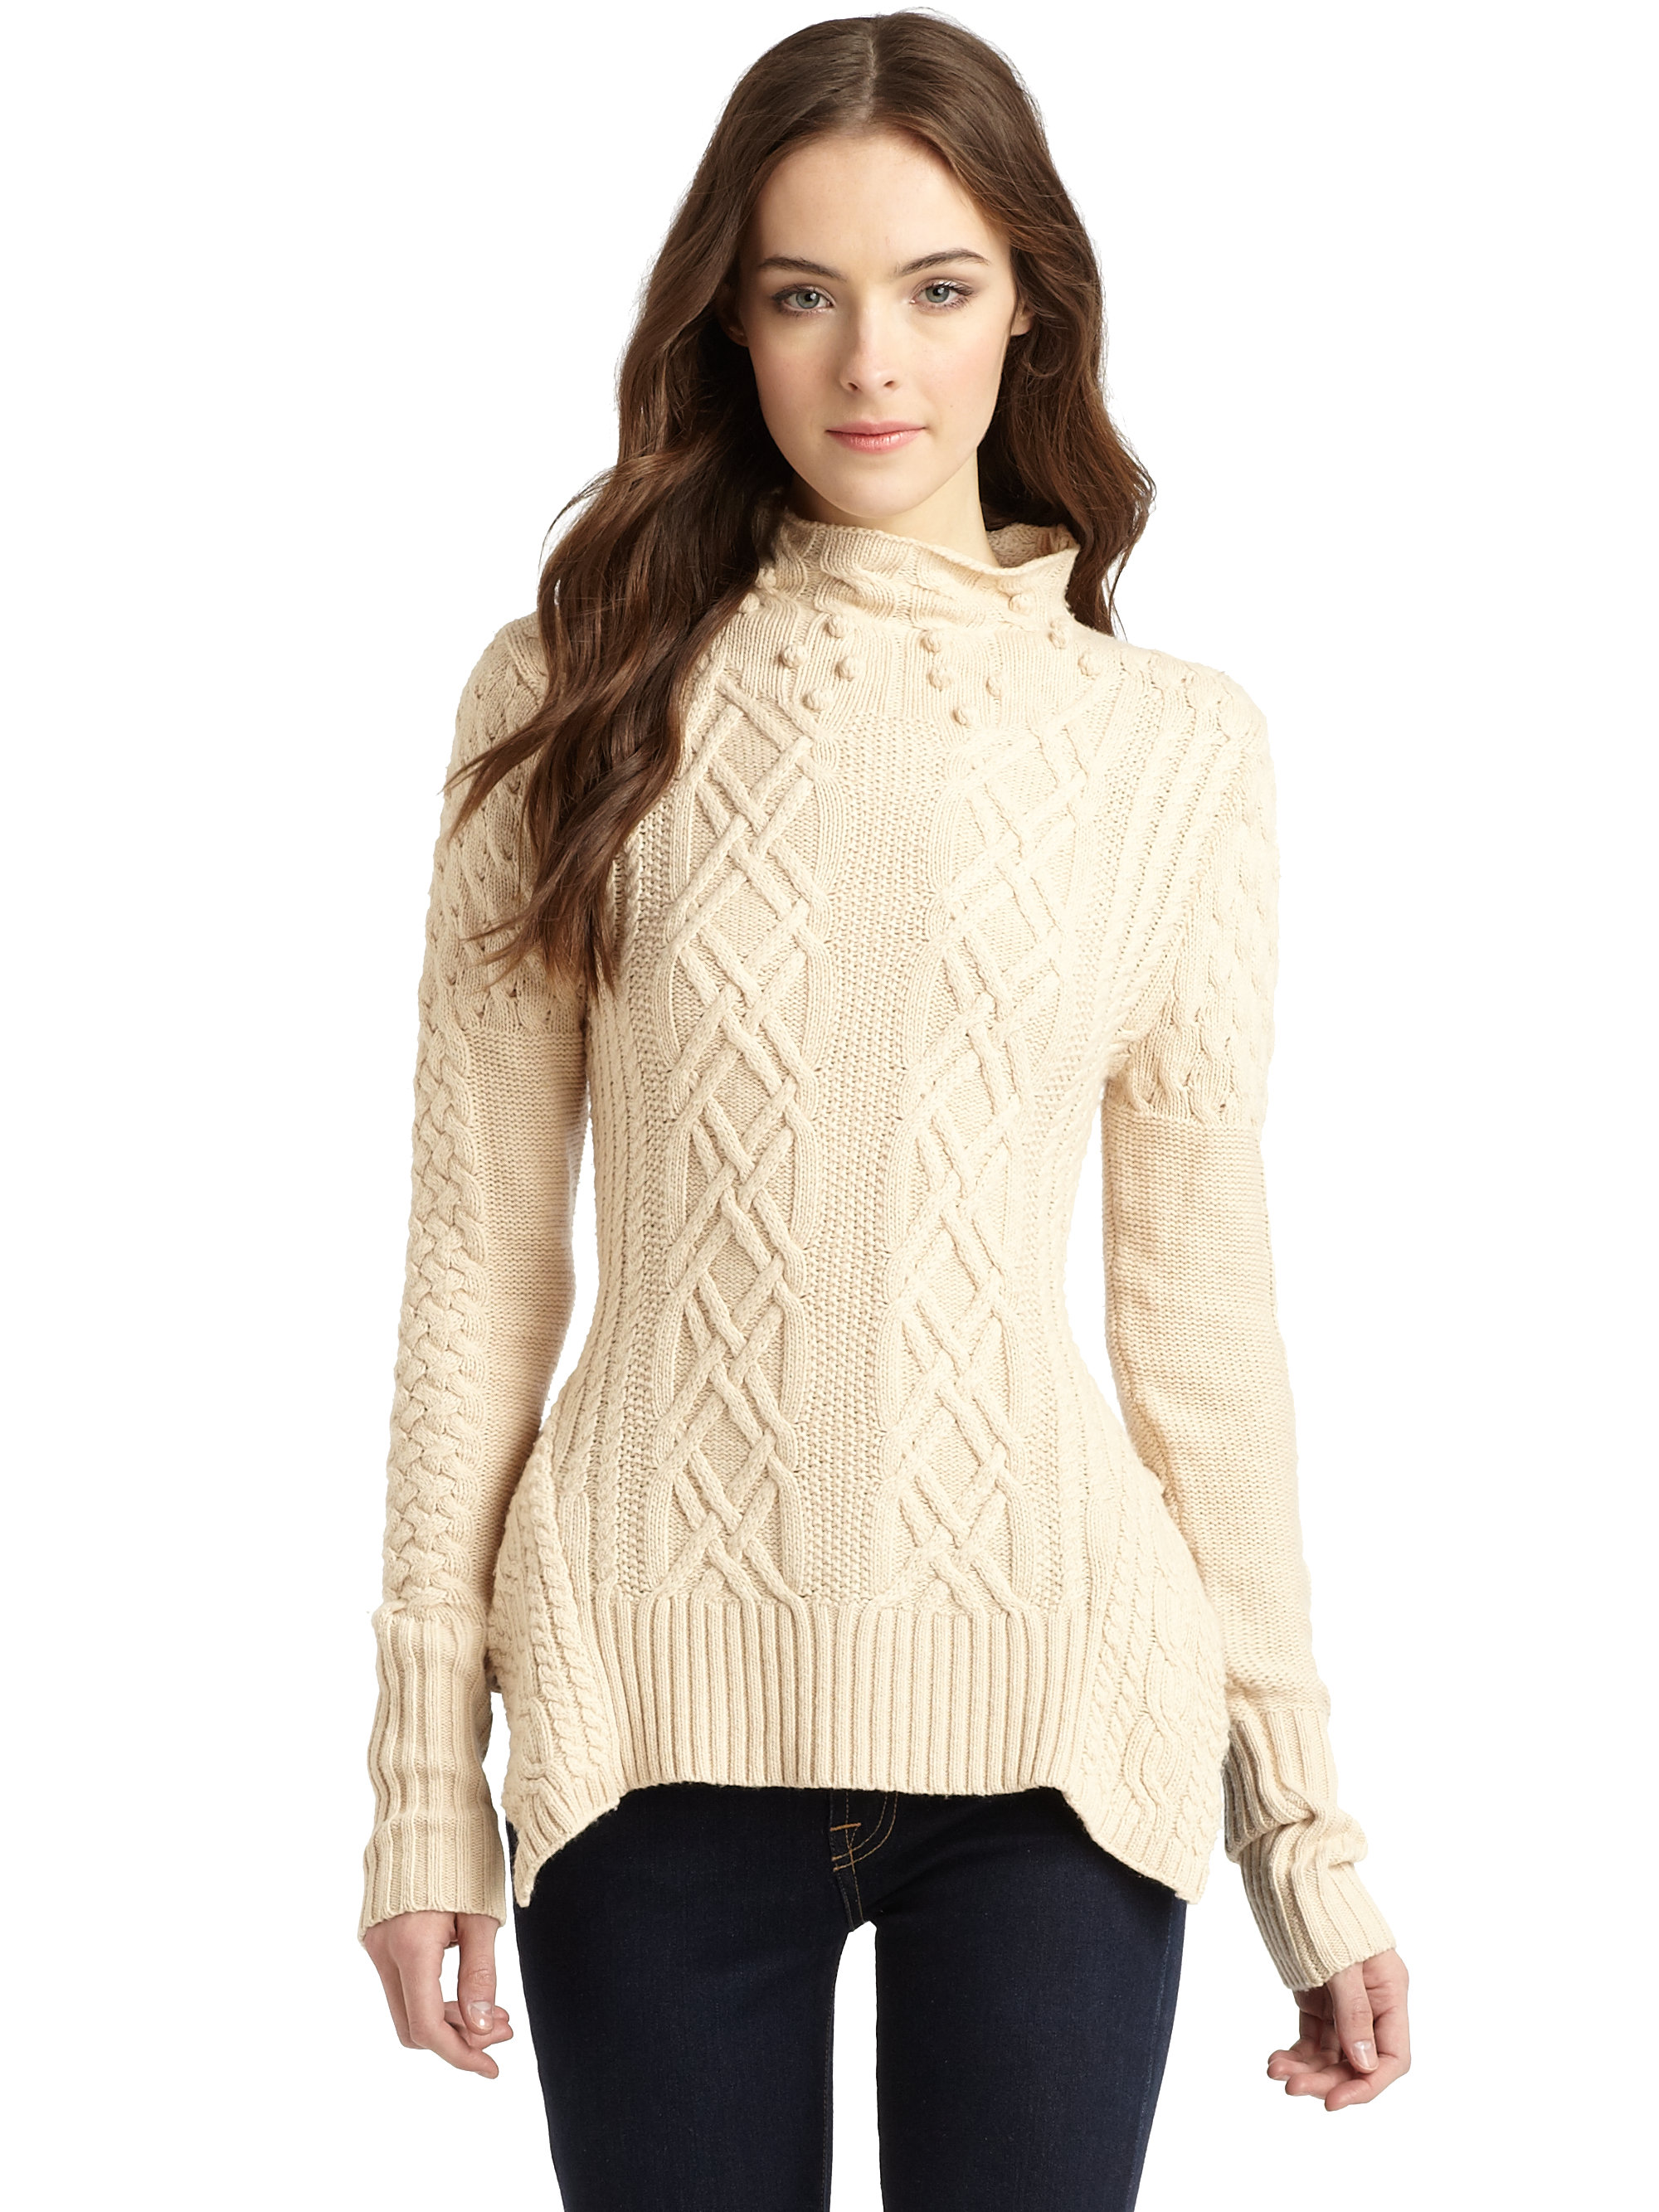 Bcbgmaxazria Maylin Cable Knit Turtleneck Sweater in Natural | Lyst